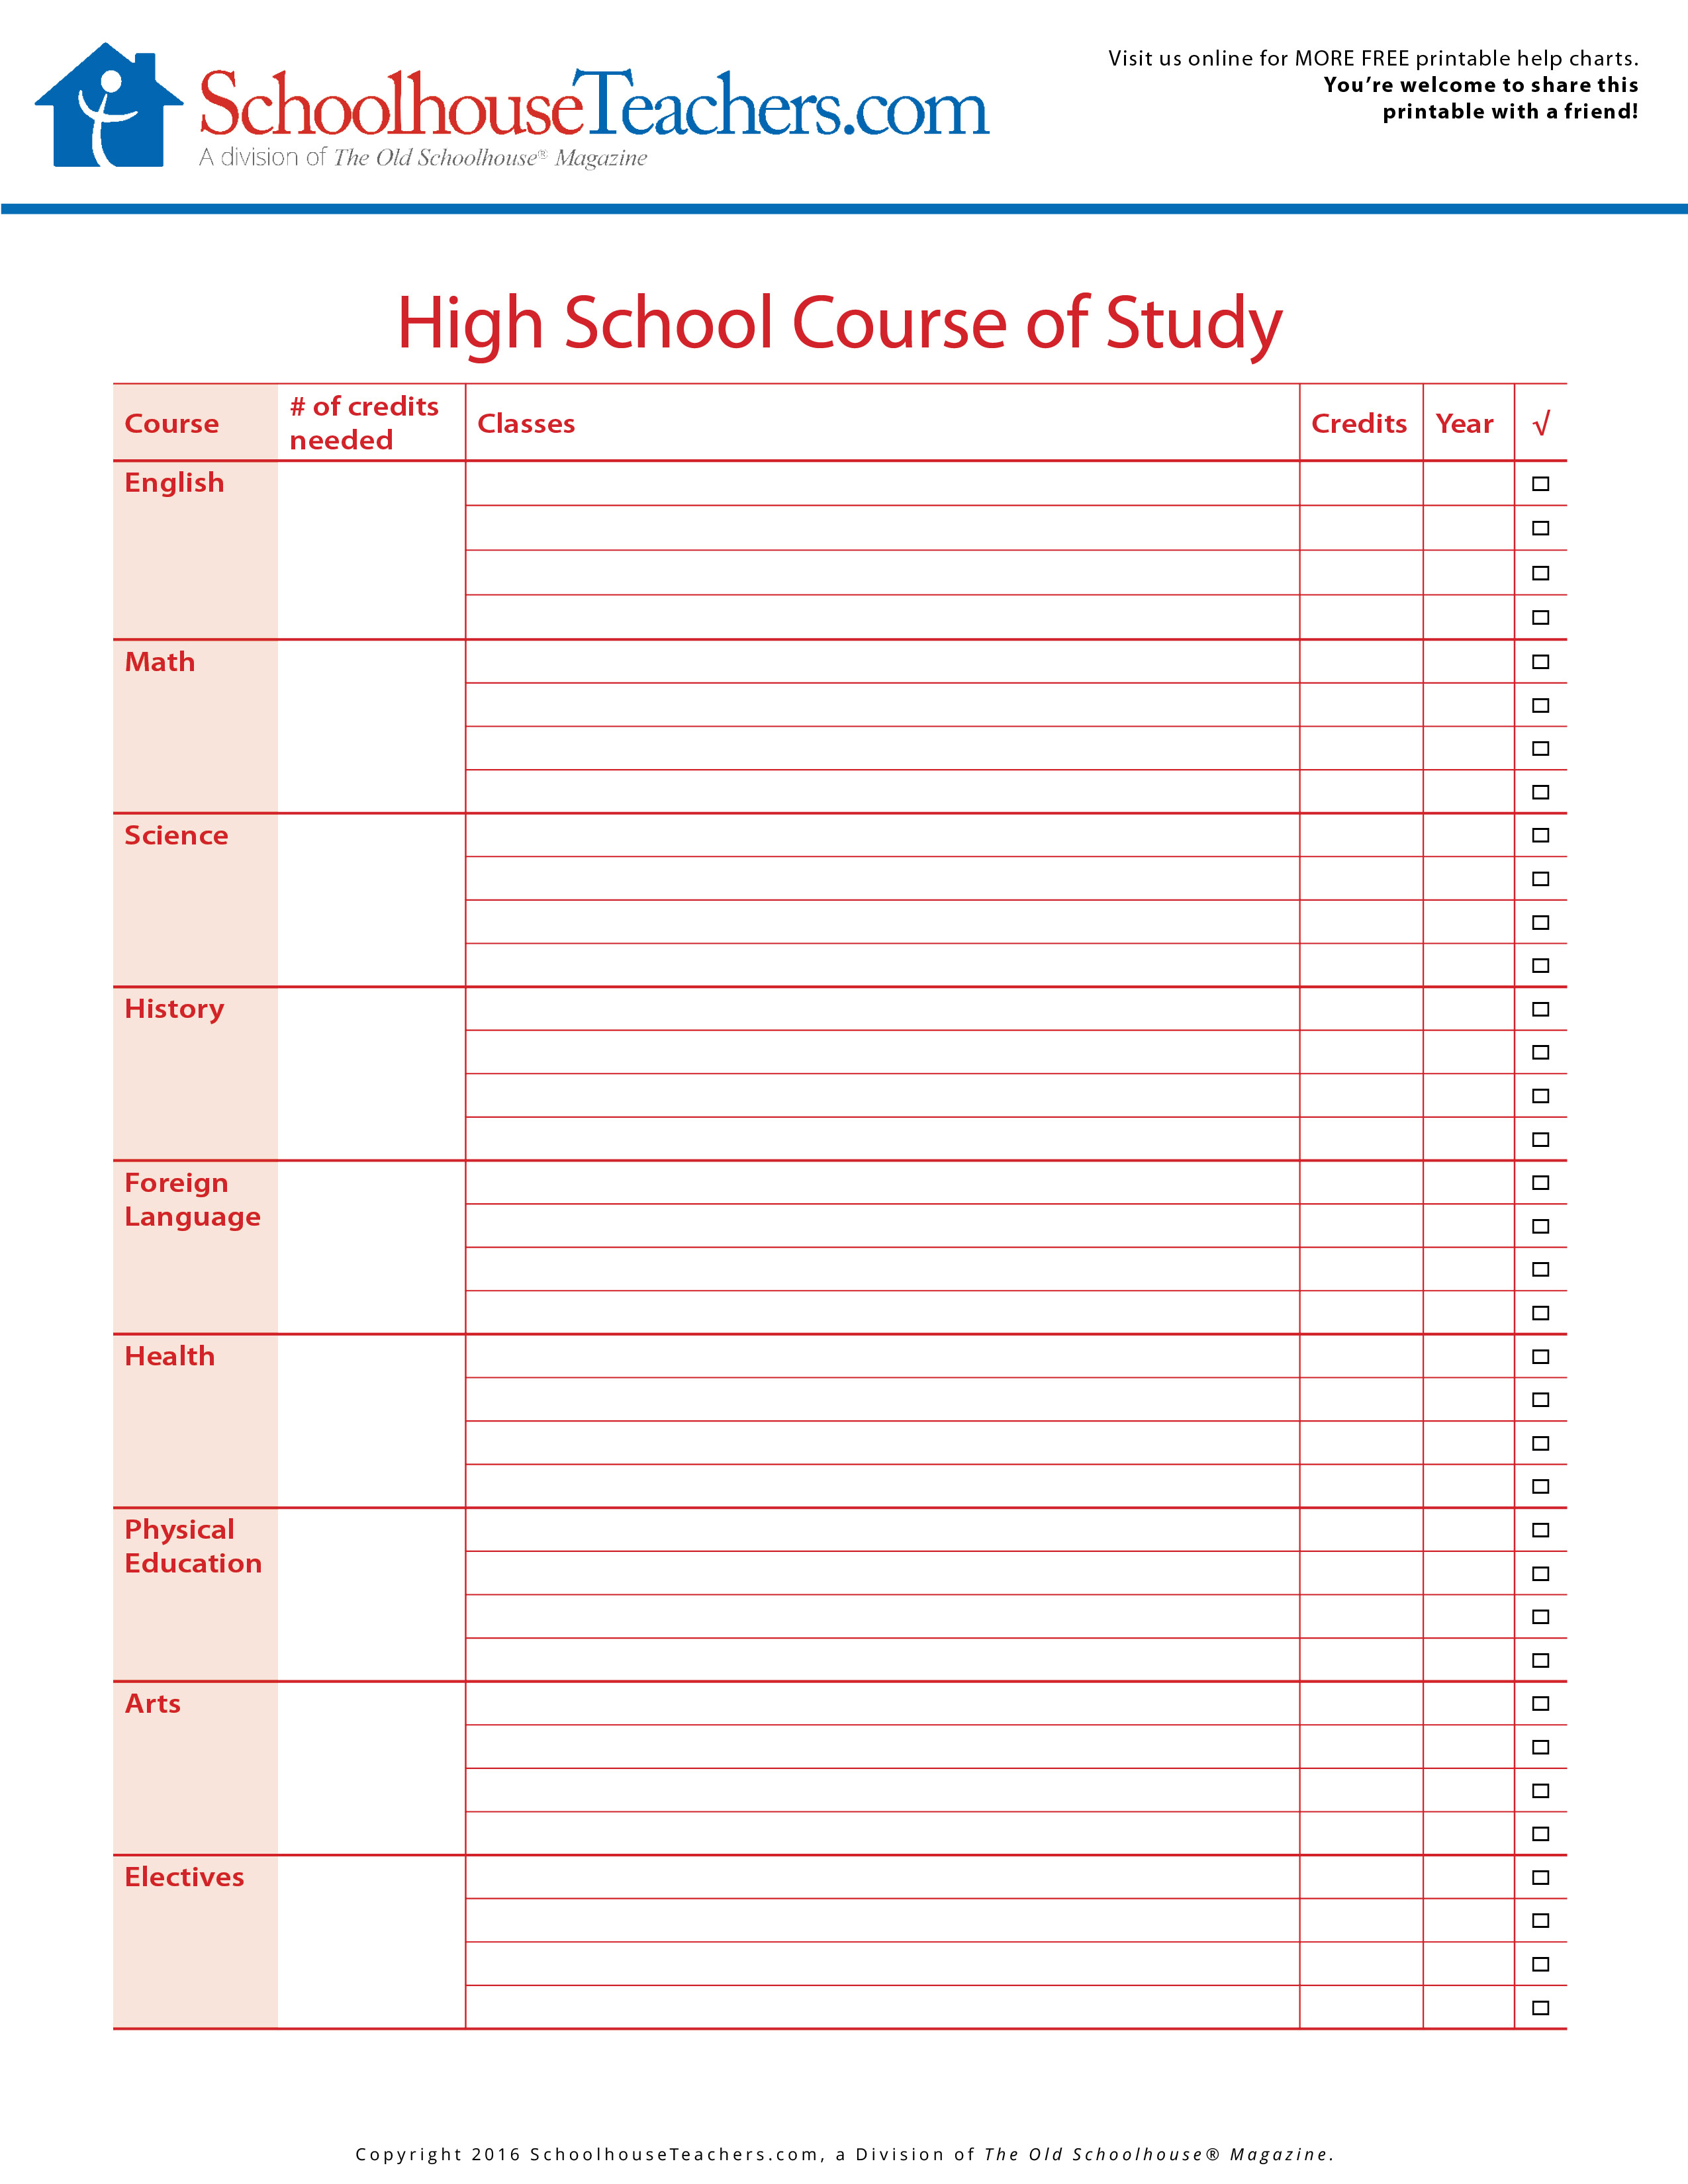 High School Help For The Homeschool Student And Parent